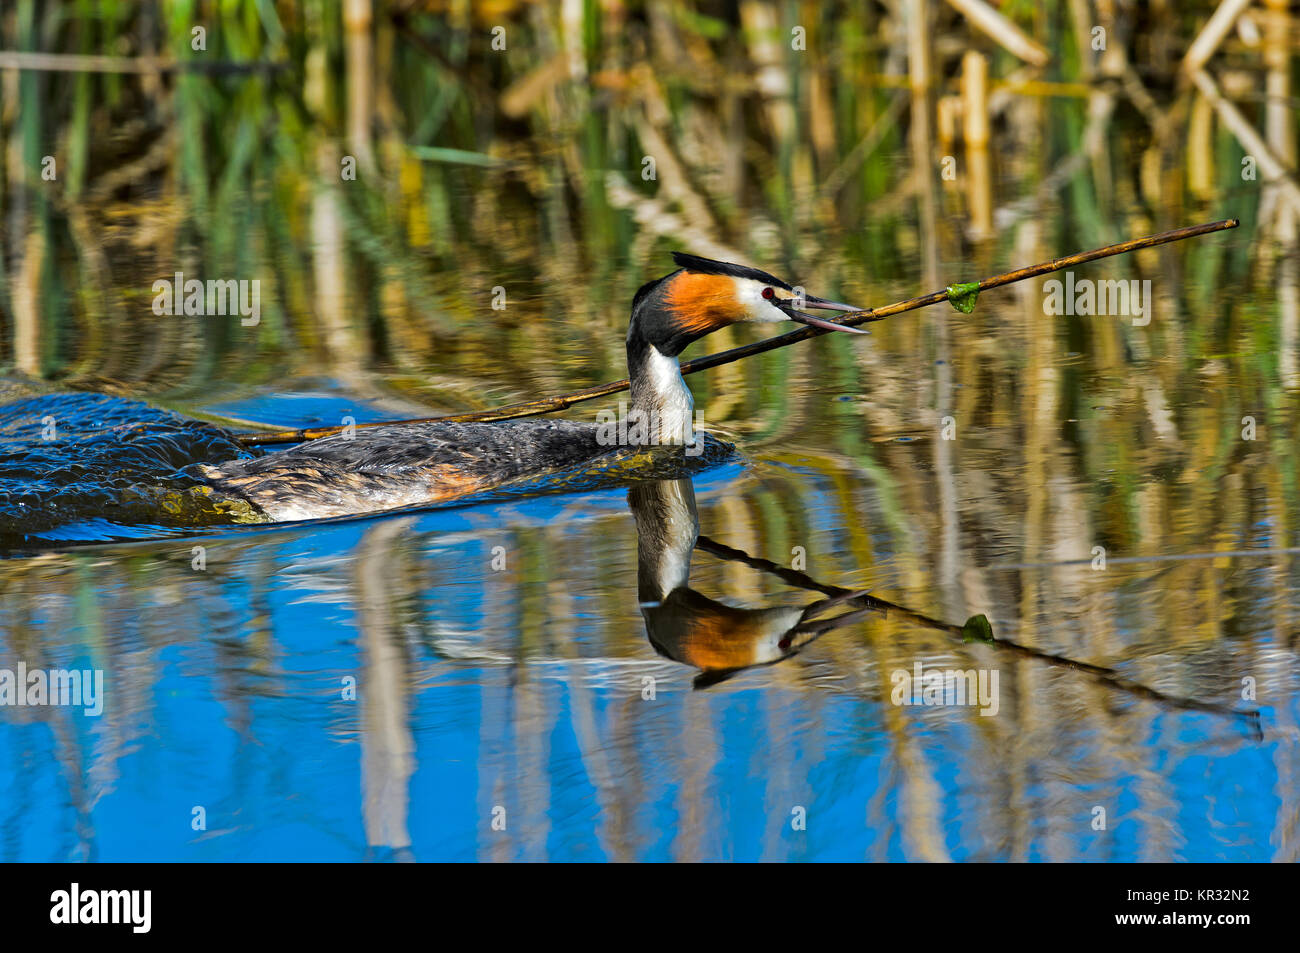 Great crested grebe (Podiceps cristatus) bringing nesting material to the nest, Netherlands - Stock Image